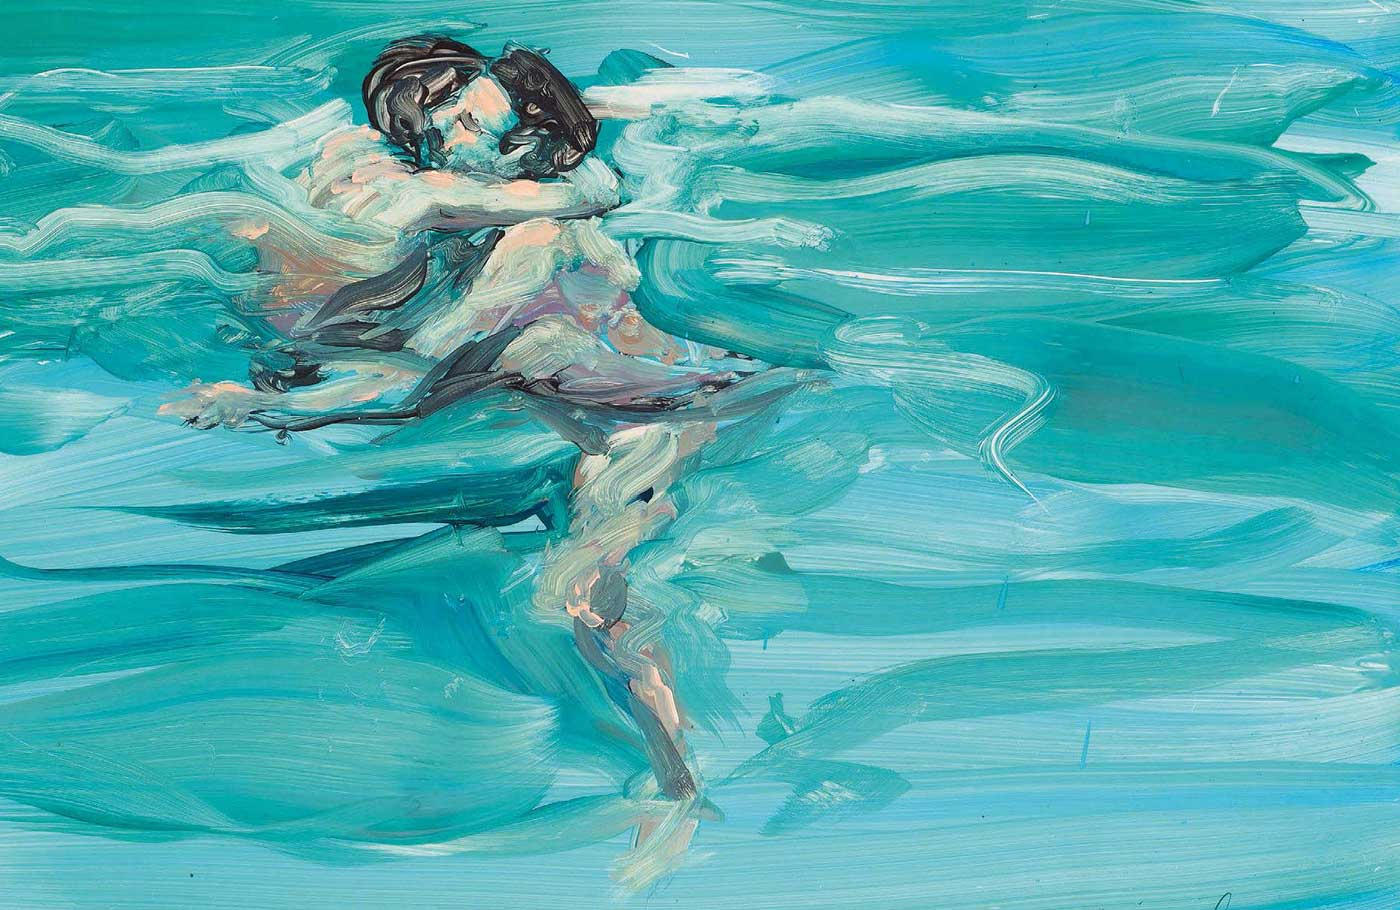 Swimming Lovers - Eric Fischle - 1984